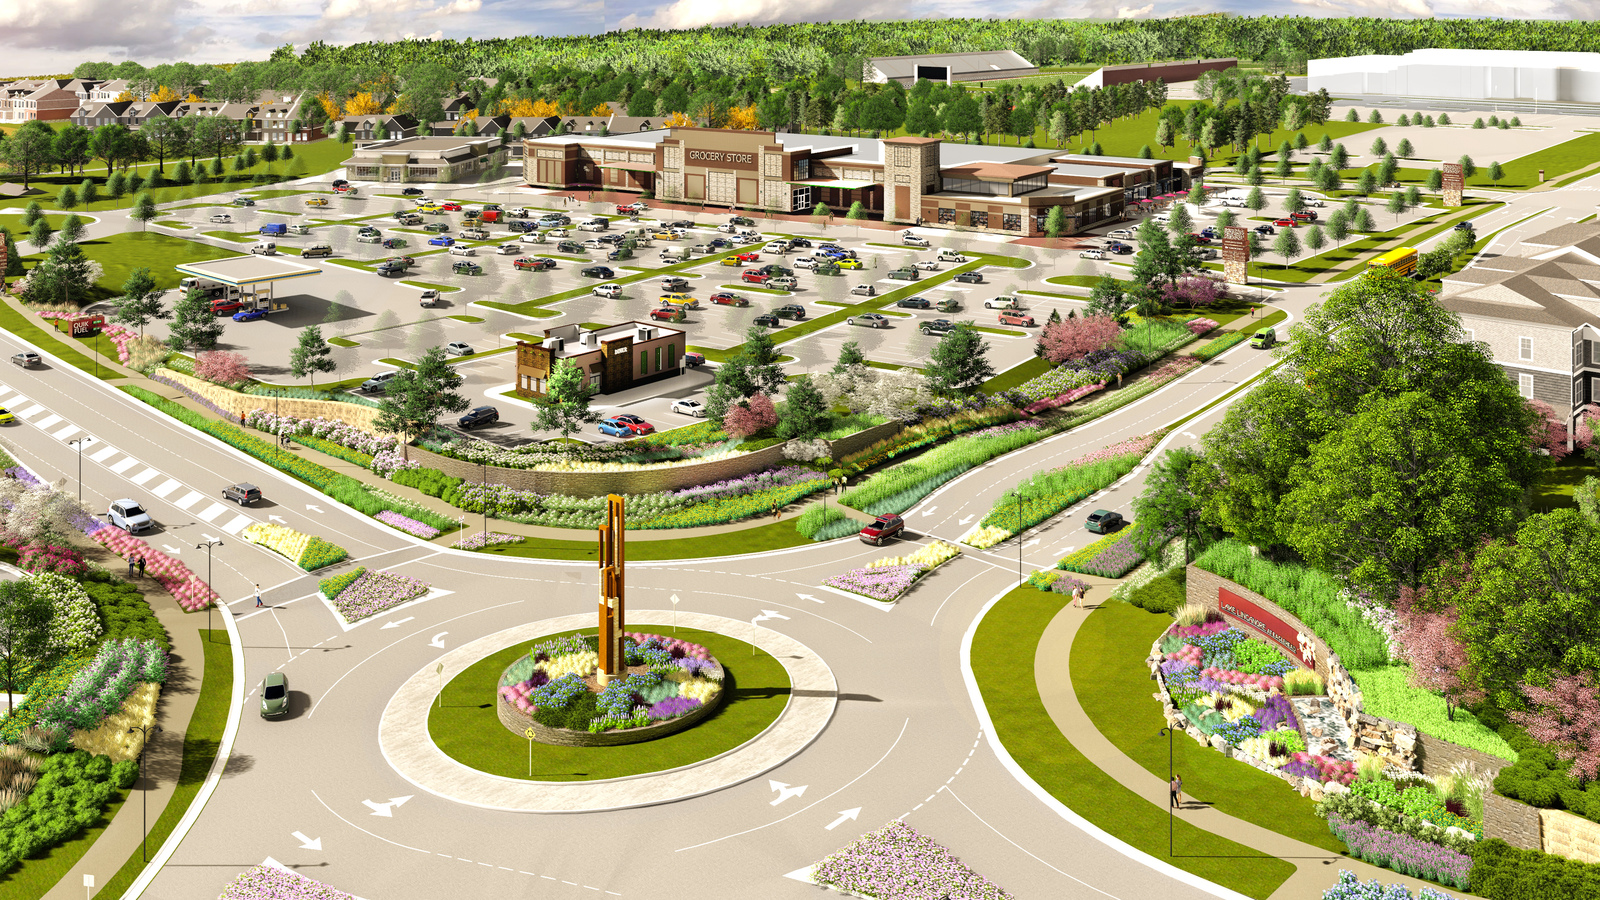 Get the best of suburban living with city-style amenities - all arriving to Lake Linganore Oakdale.